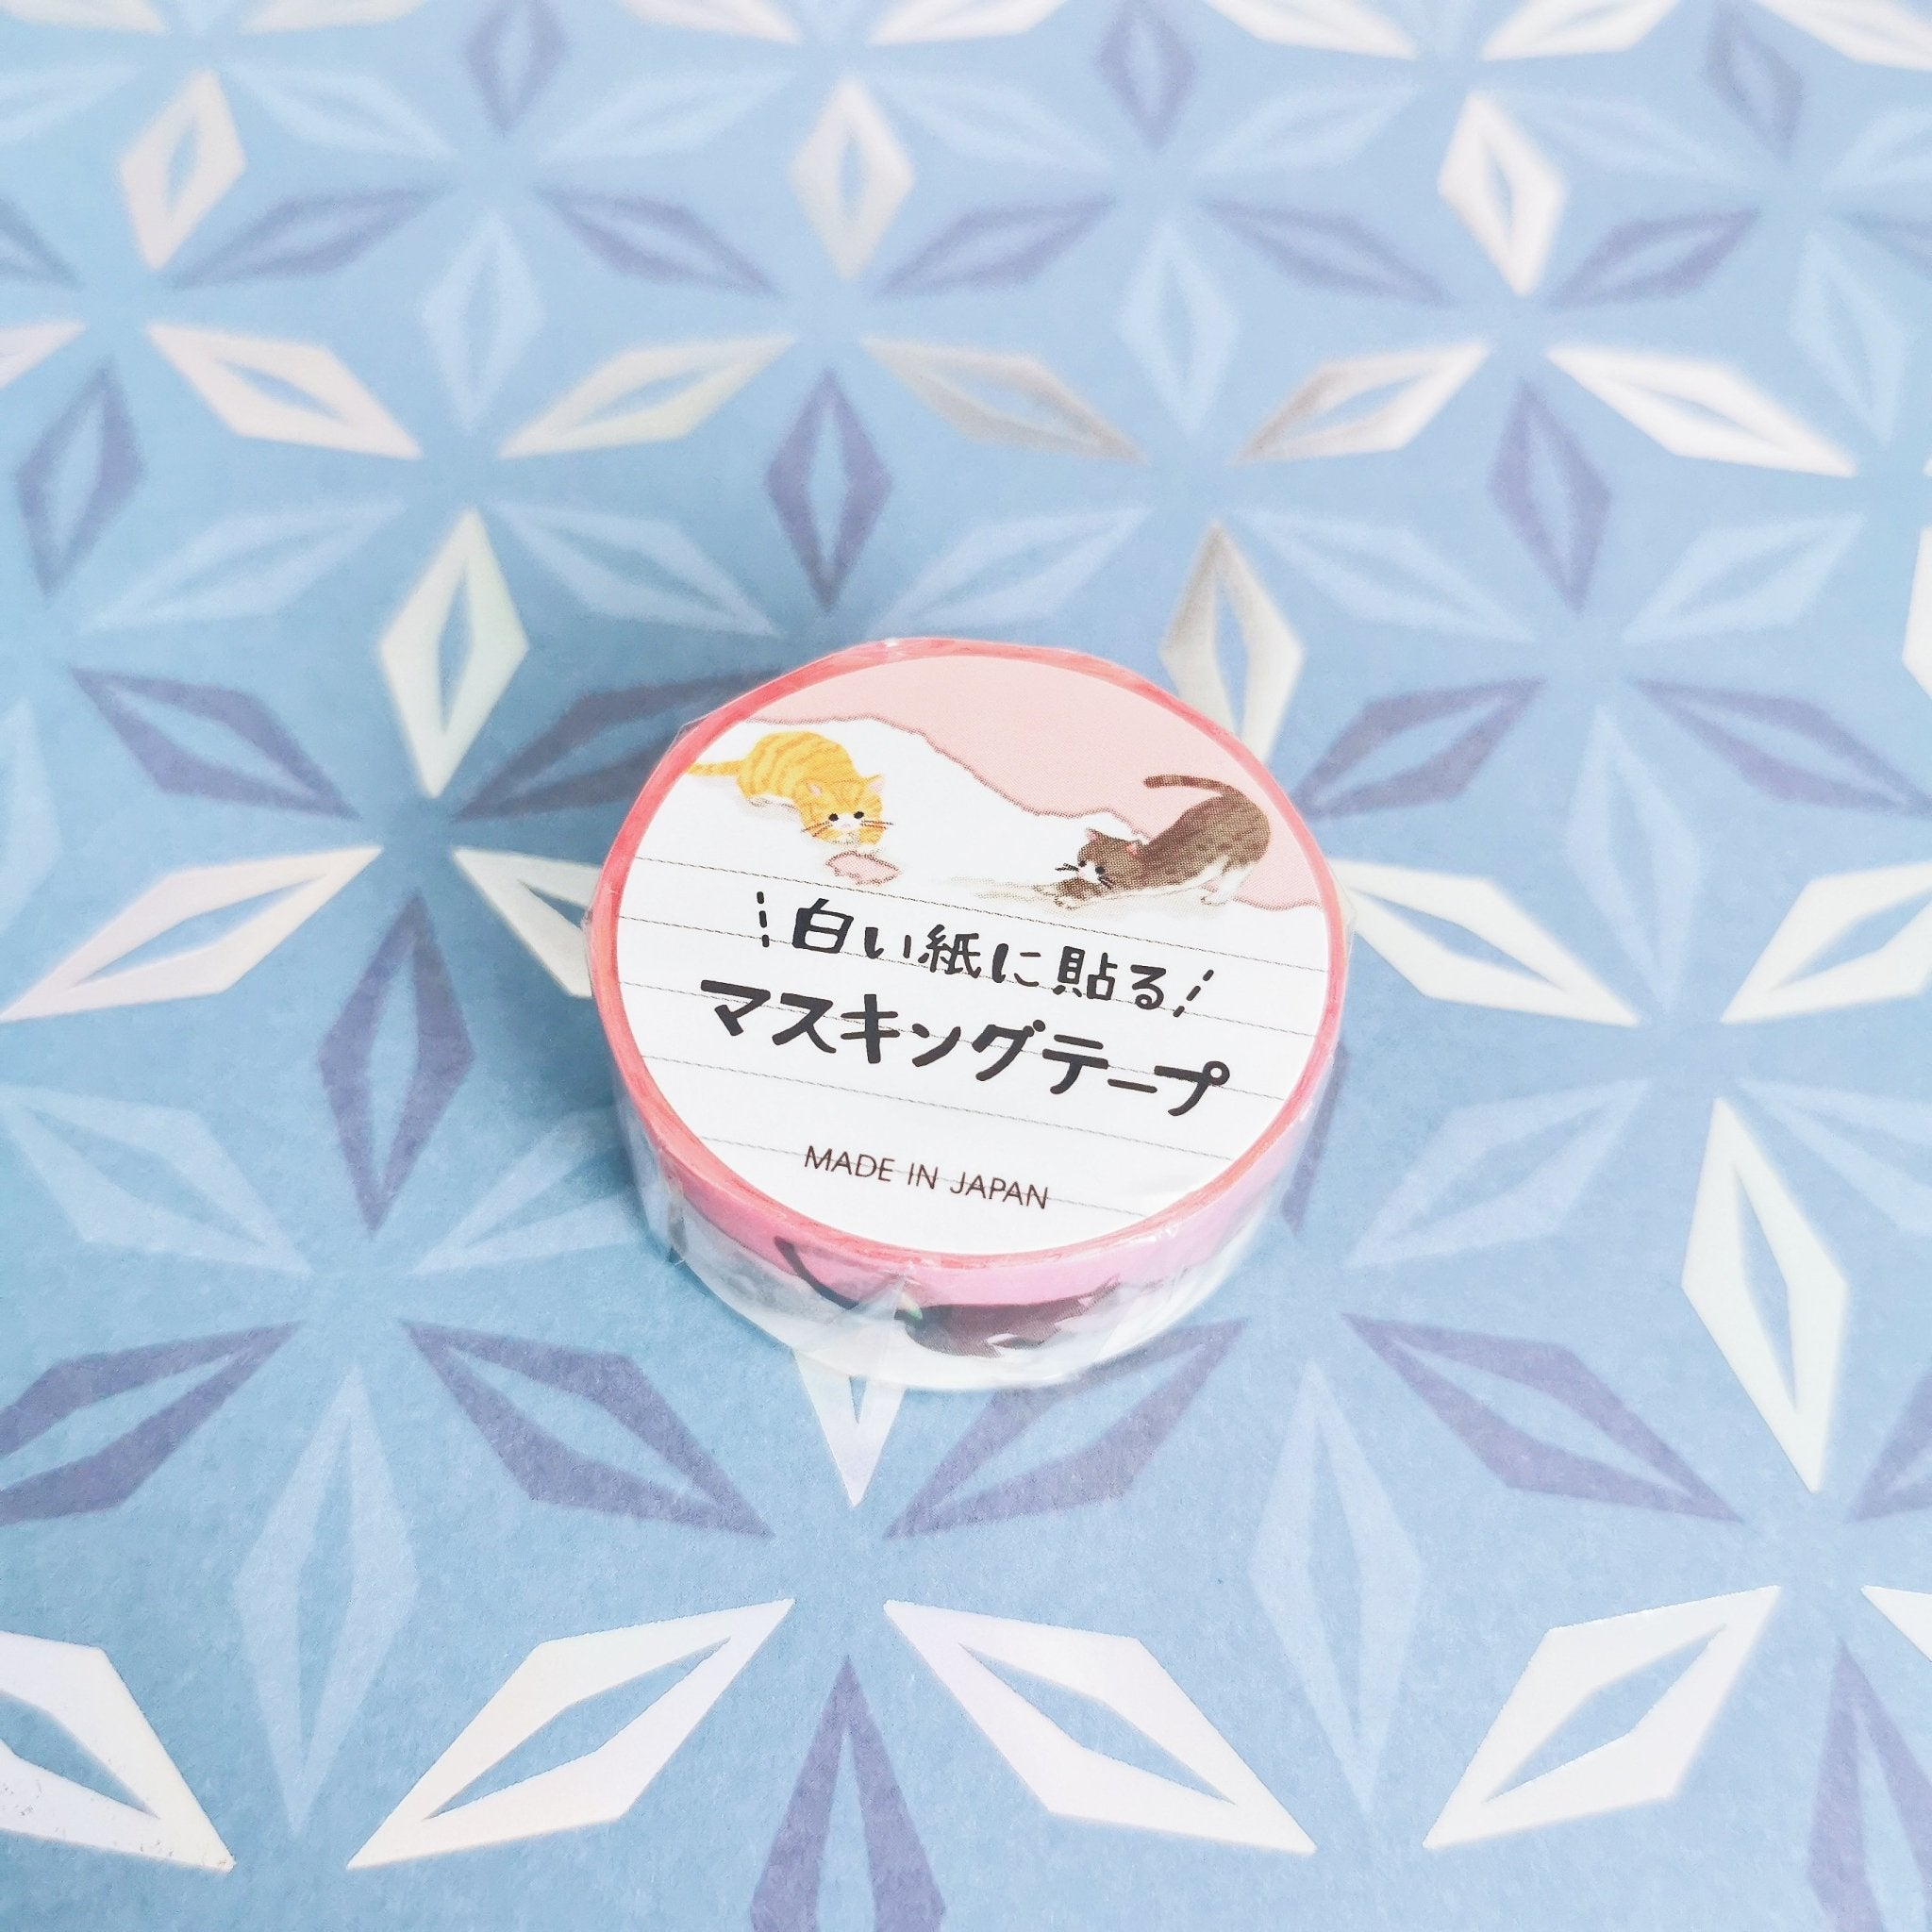 Washi Tape - Naughty Cats - Sutoru - Washi Tape - To Paste